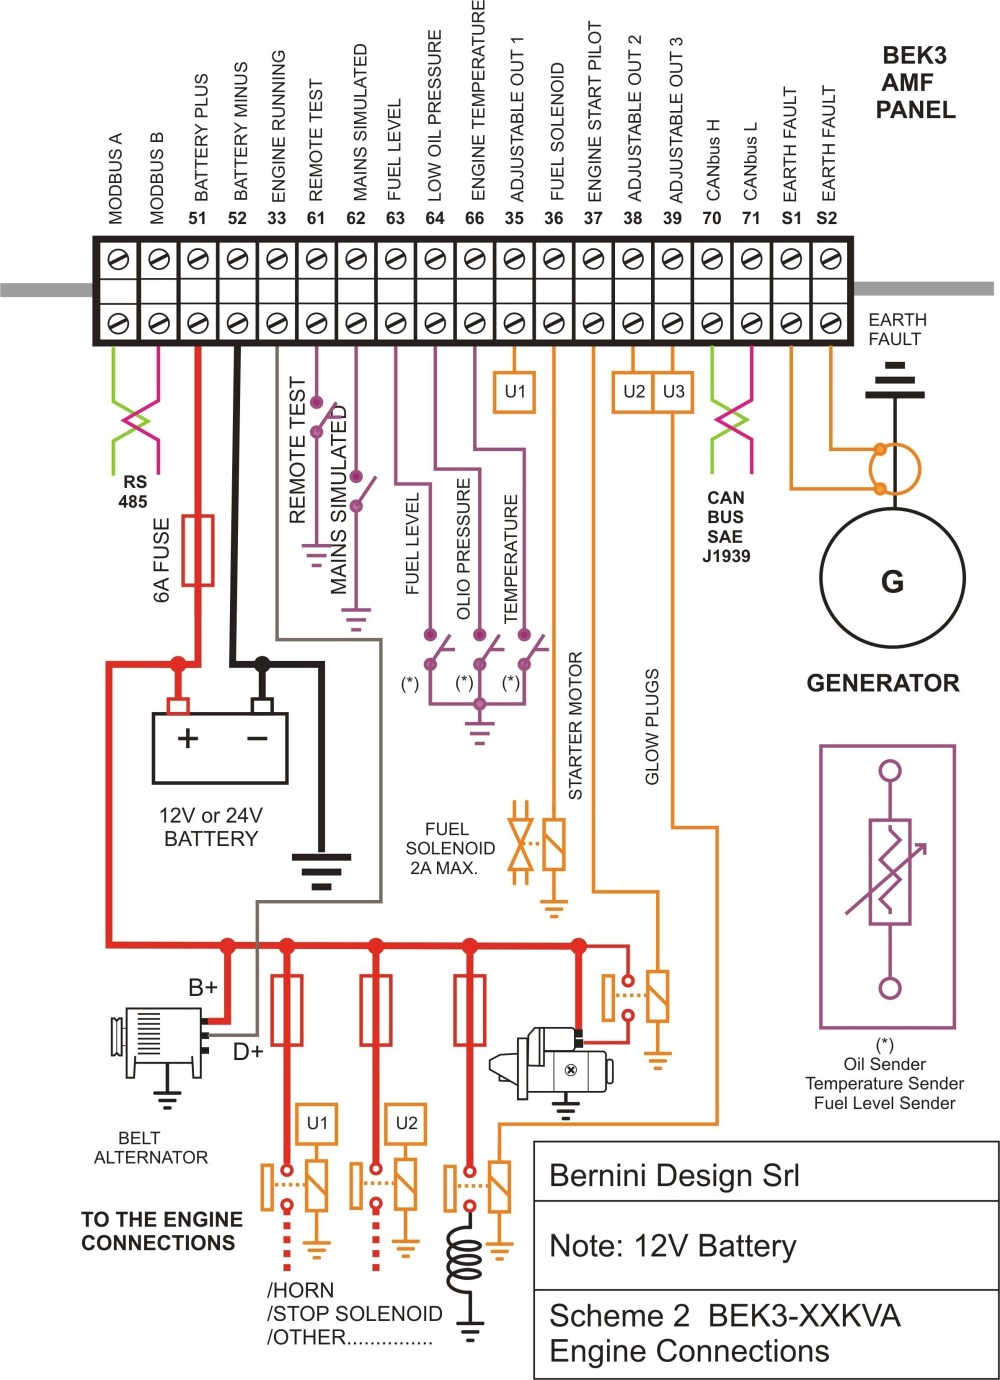 medium resolution of wrg 9159 1 phase motor rm 990 wiring diagram 1 phase motor rm 990 wiring diagram